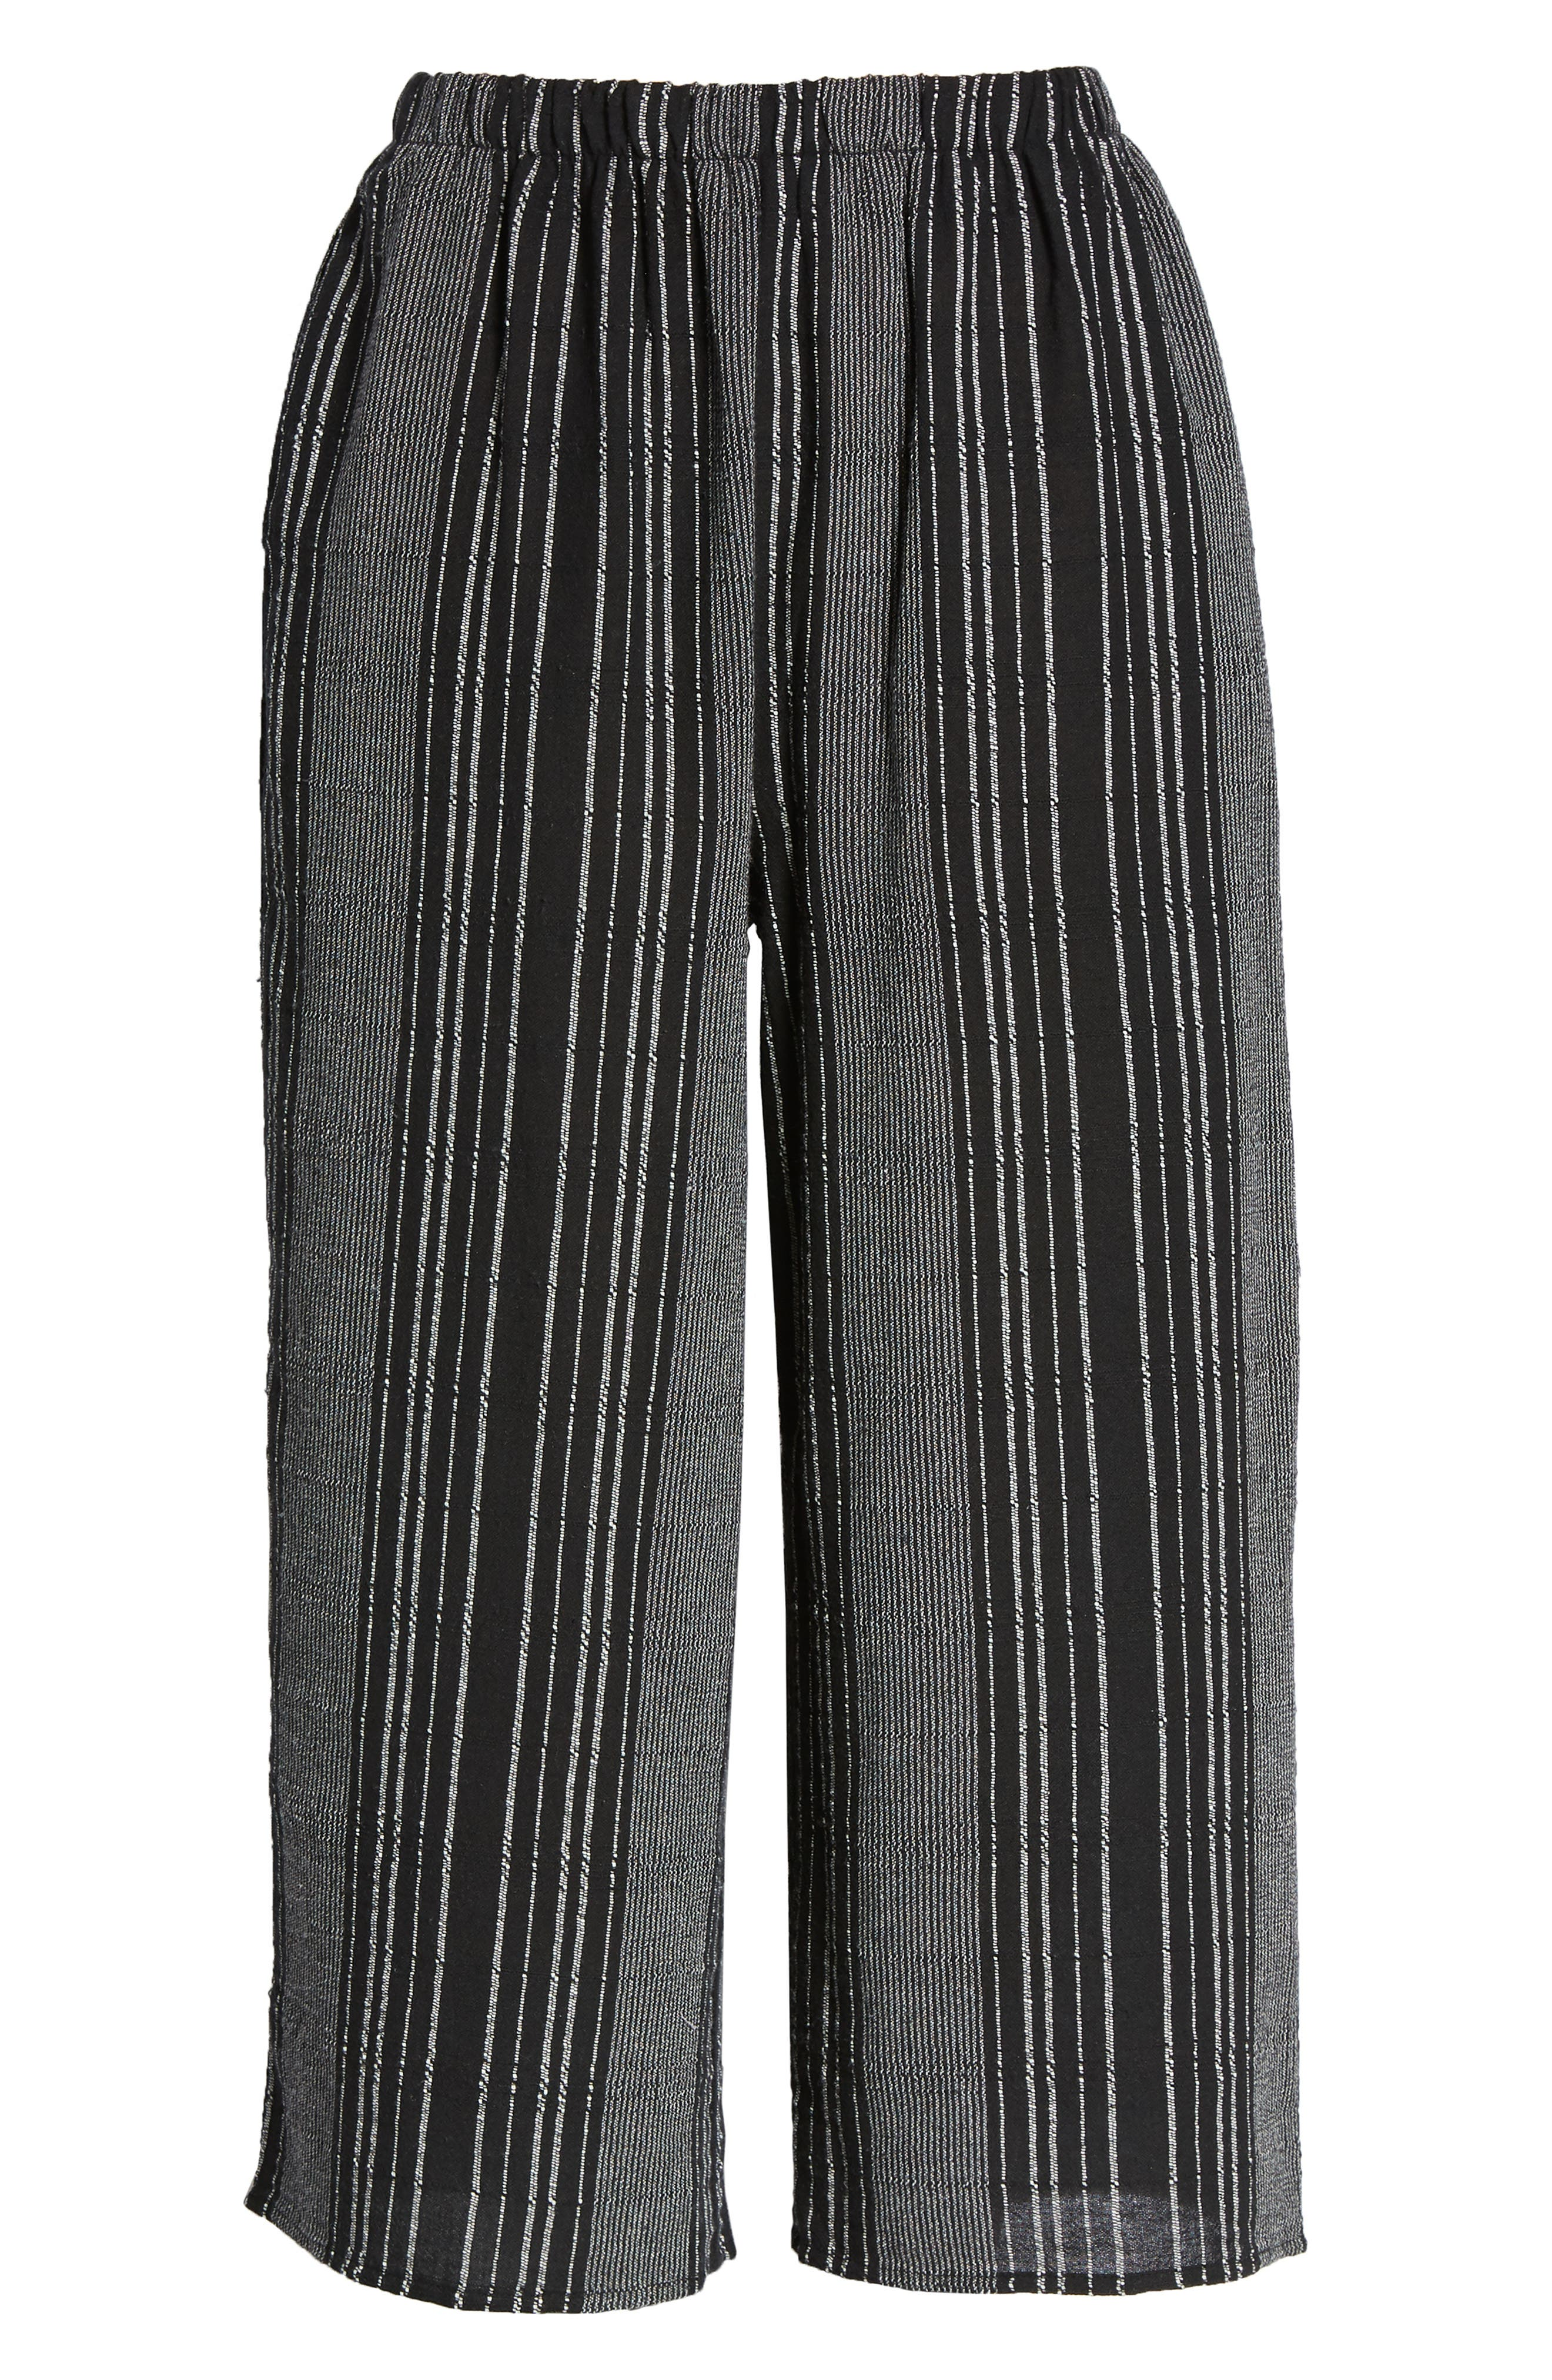 Bella Stripe Crop Pants,                             Alternate thumbnail 7, color,